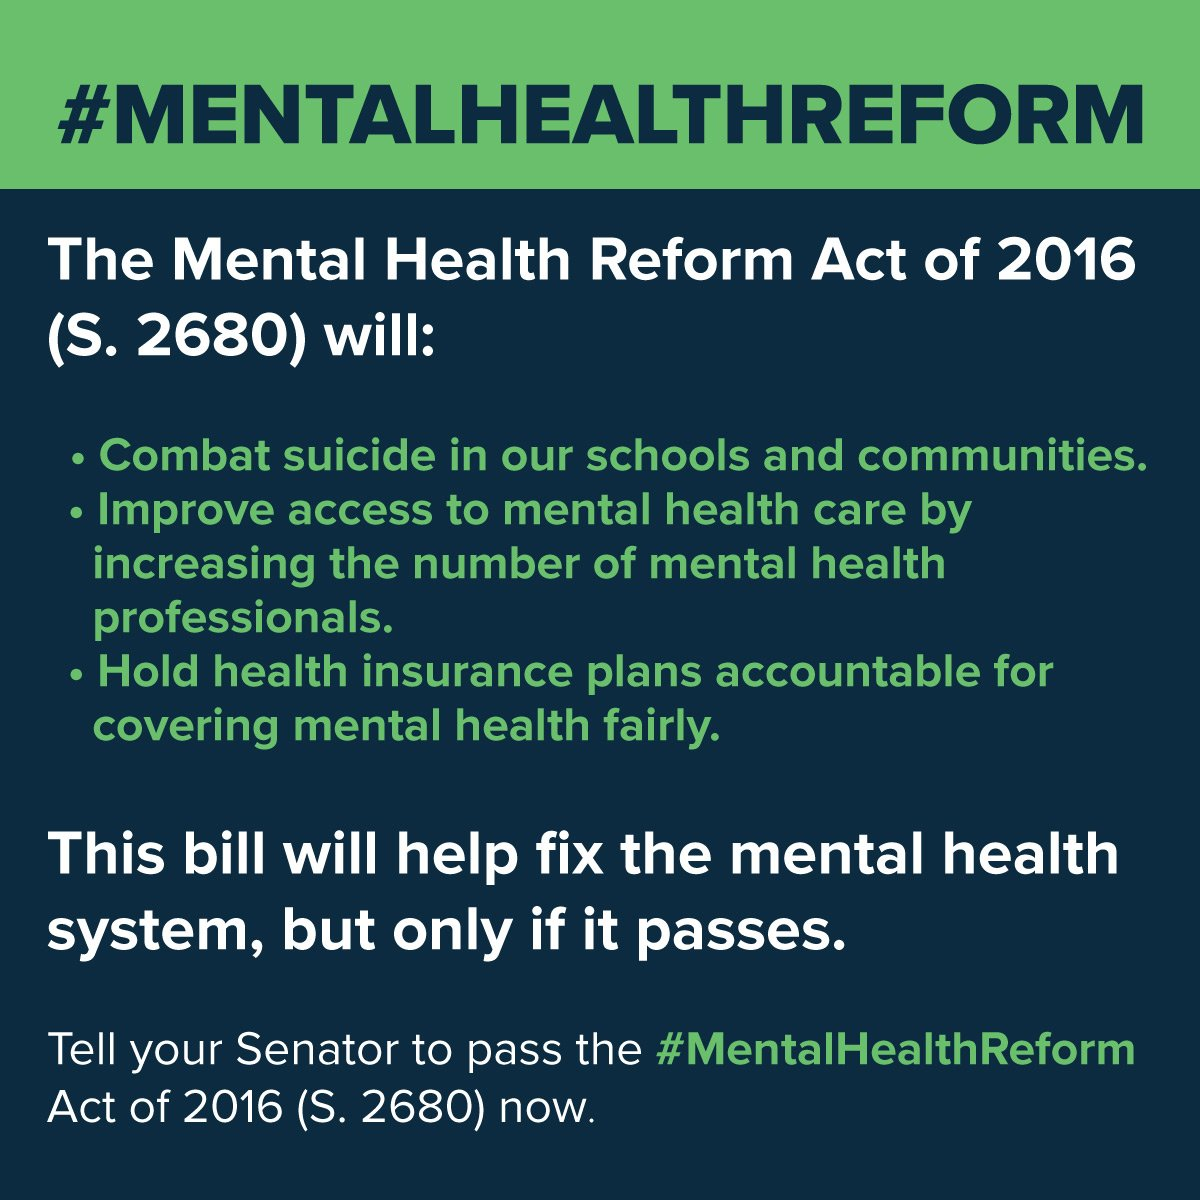 10%+ of people seeking mental health treatment are homeless. Ask your Senators to vote for #MentalHealthReform. https://t.co/vBWctHoonB